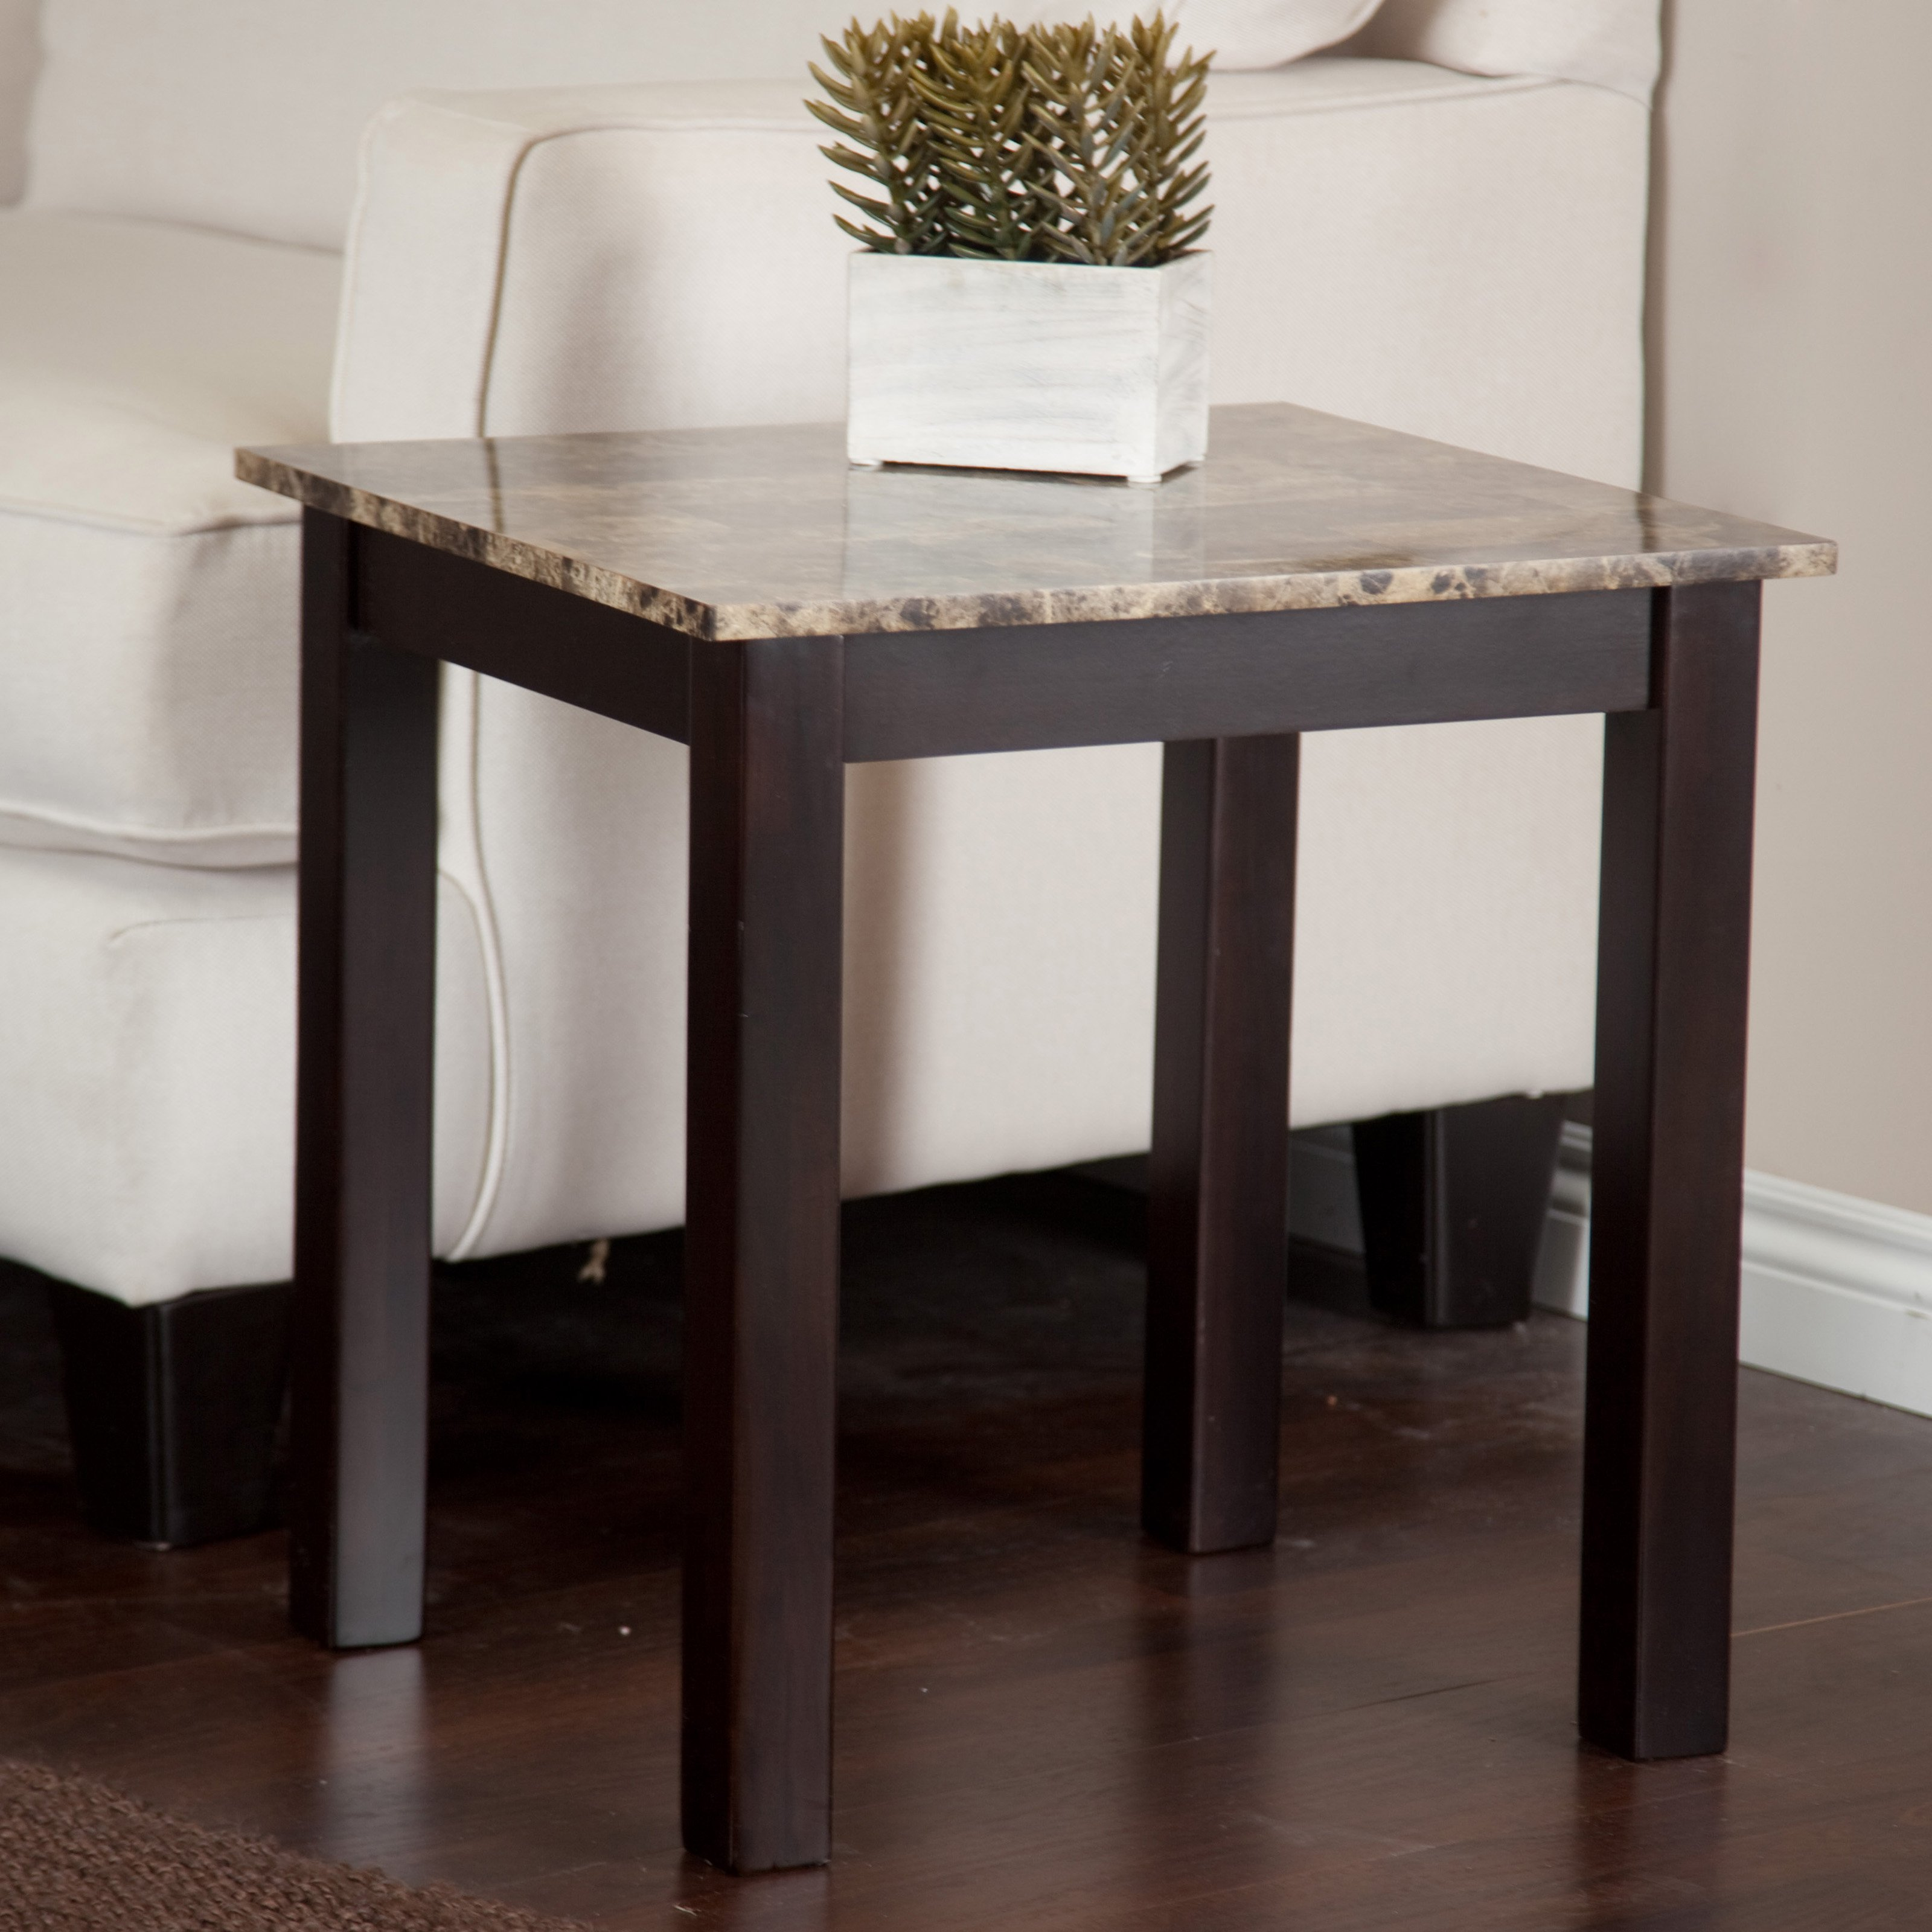 monarch accent table cappuccino marble top specialties side narrow hallway large round cover small outdoor umbrella pottery barn flower nyc black drum stacking tables square